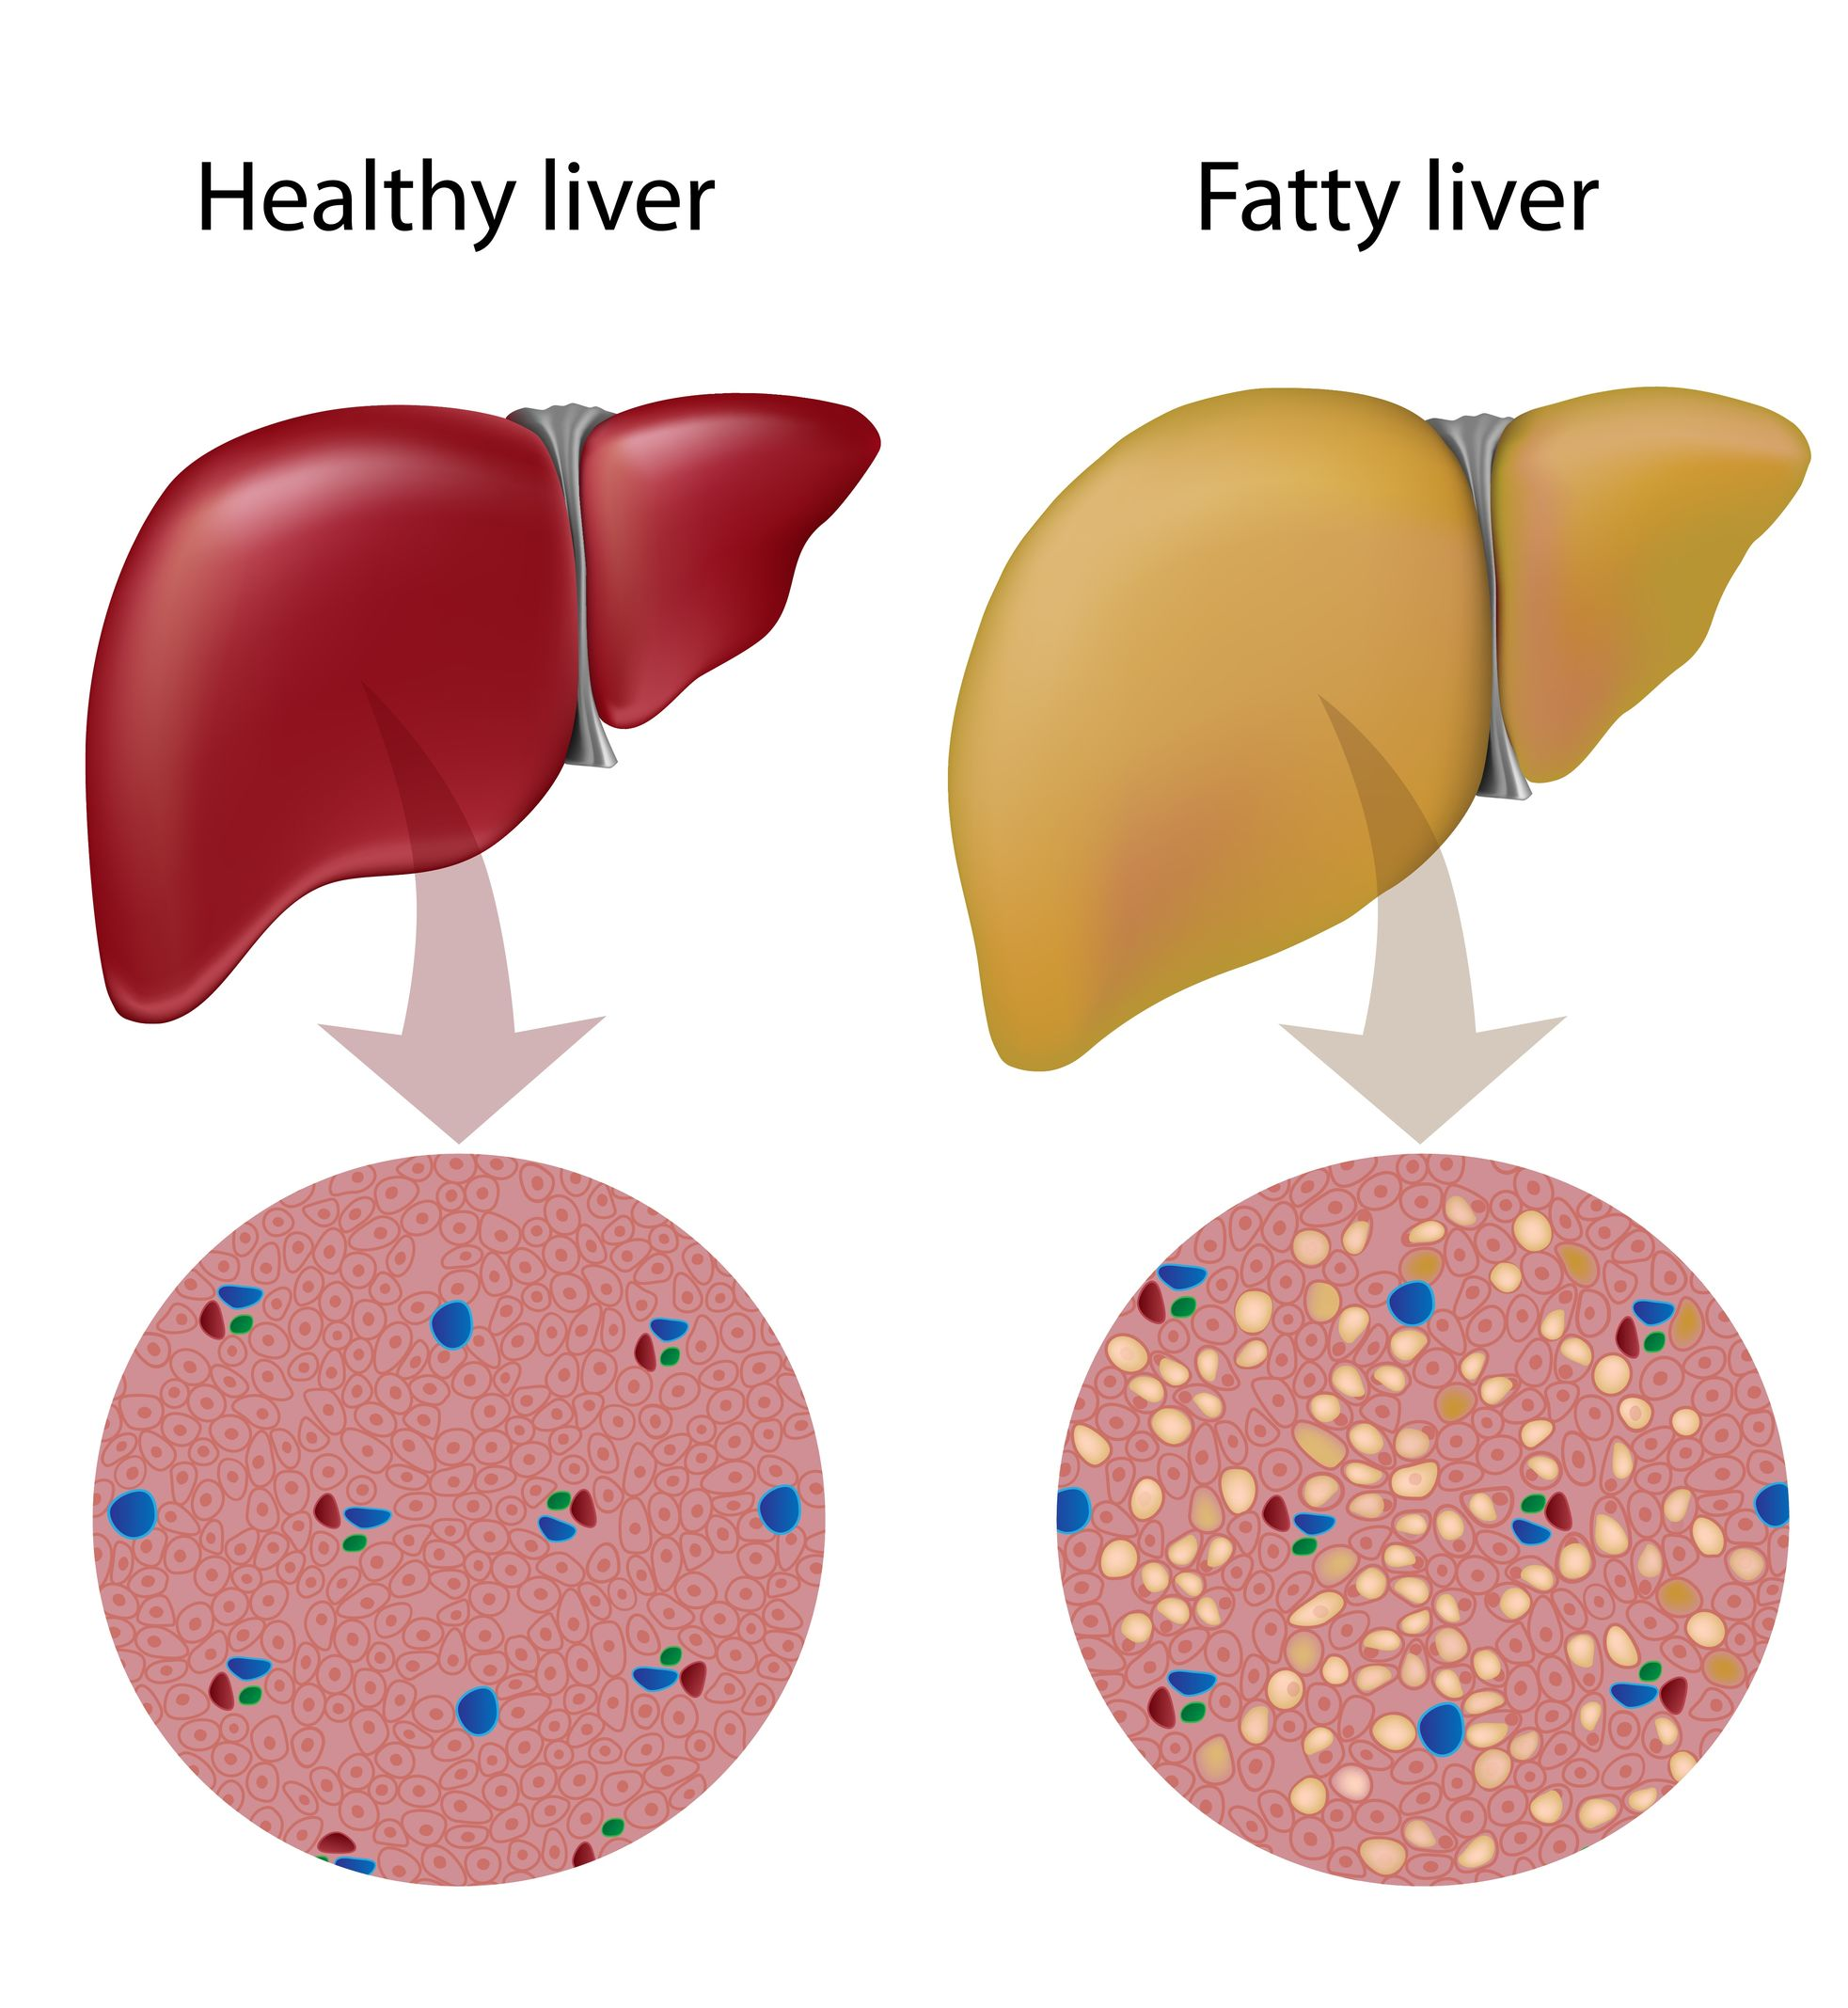 Metabolic Syndrome and Fatty Liver